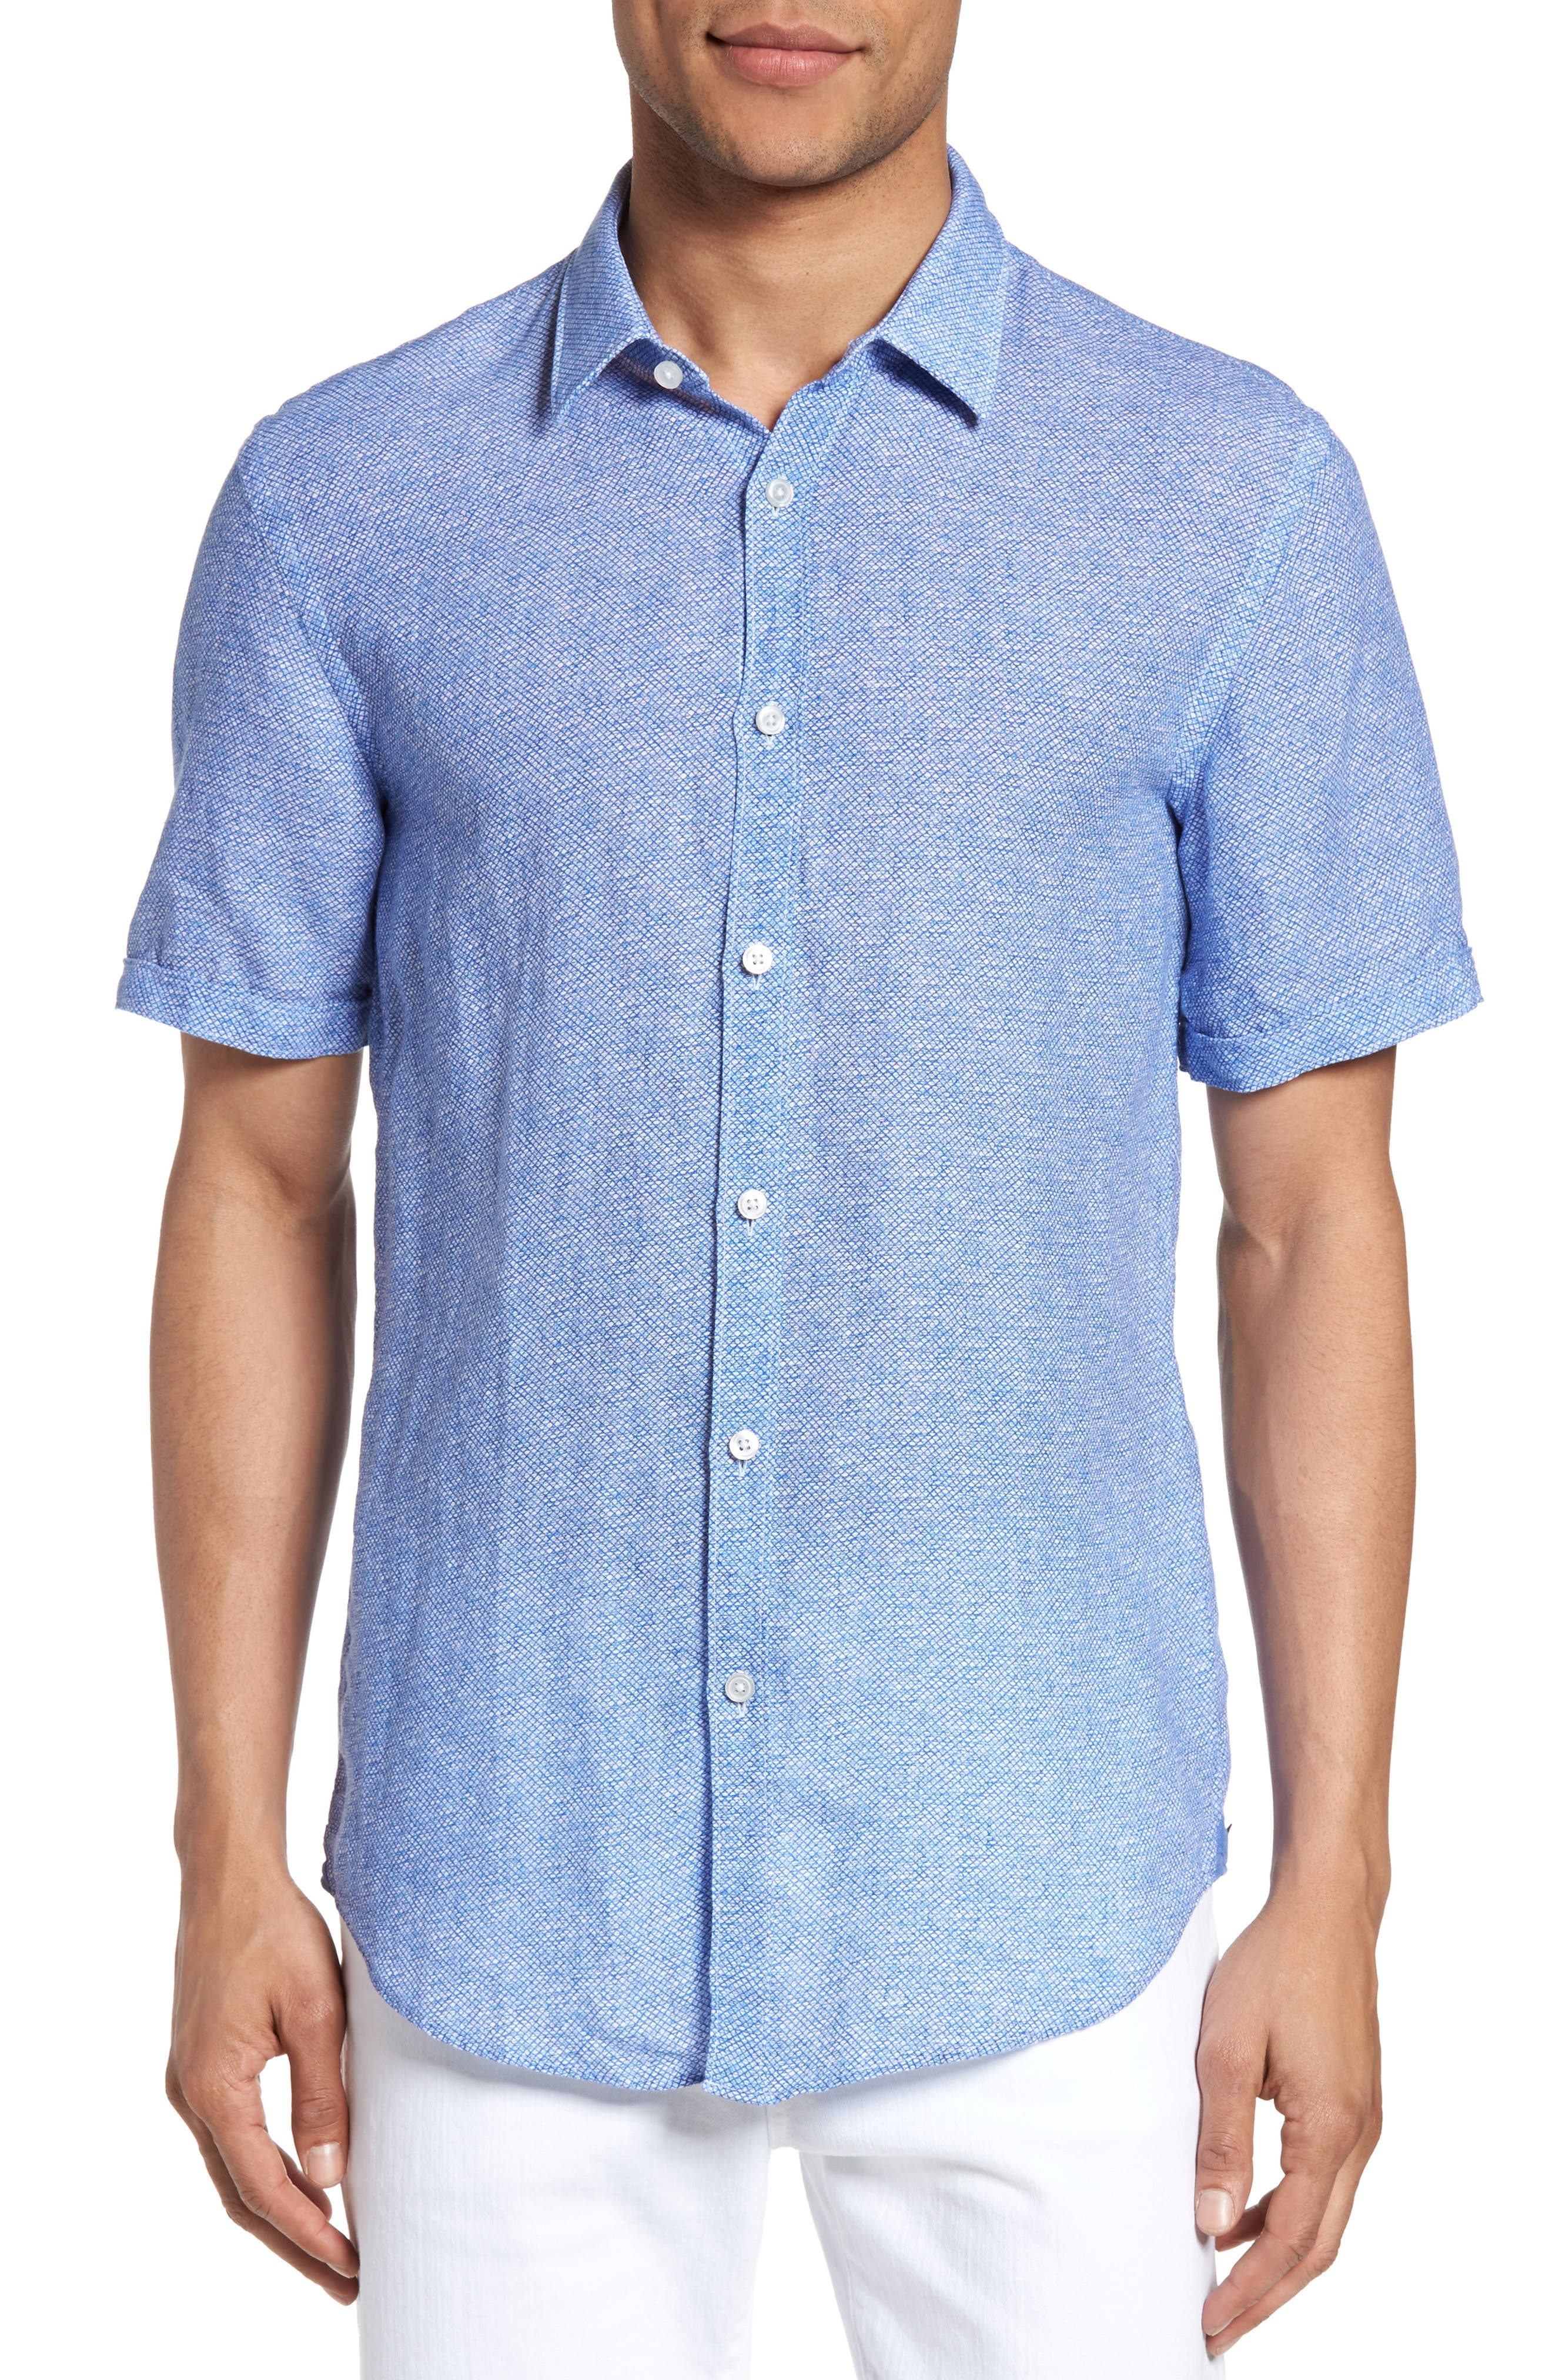 Alternate Image 1 Selected - BOSS Ronn Extra Slim Fit Print Linen Sport Shirt